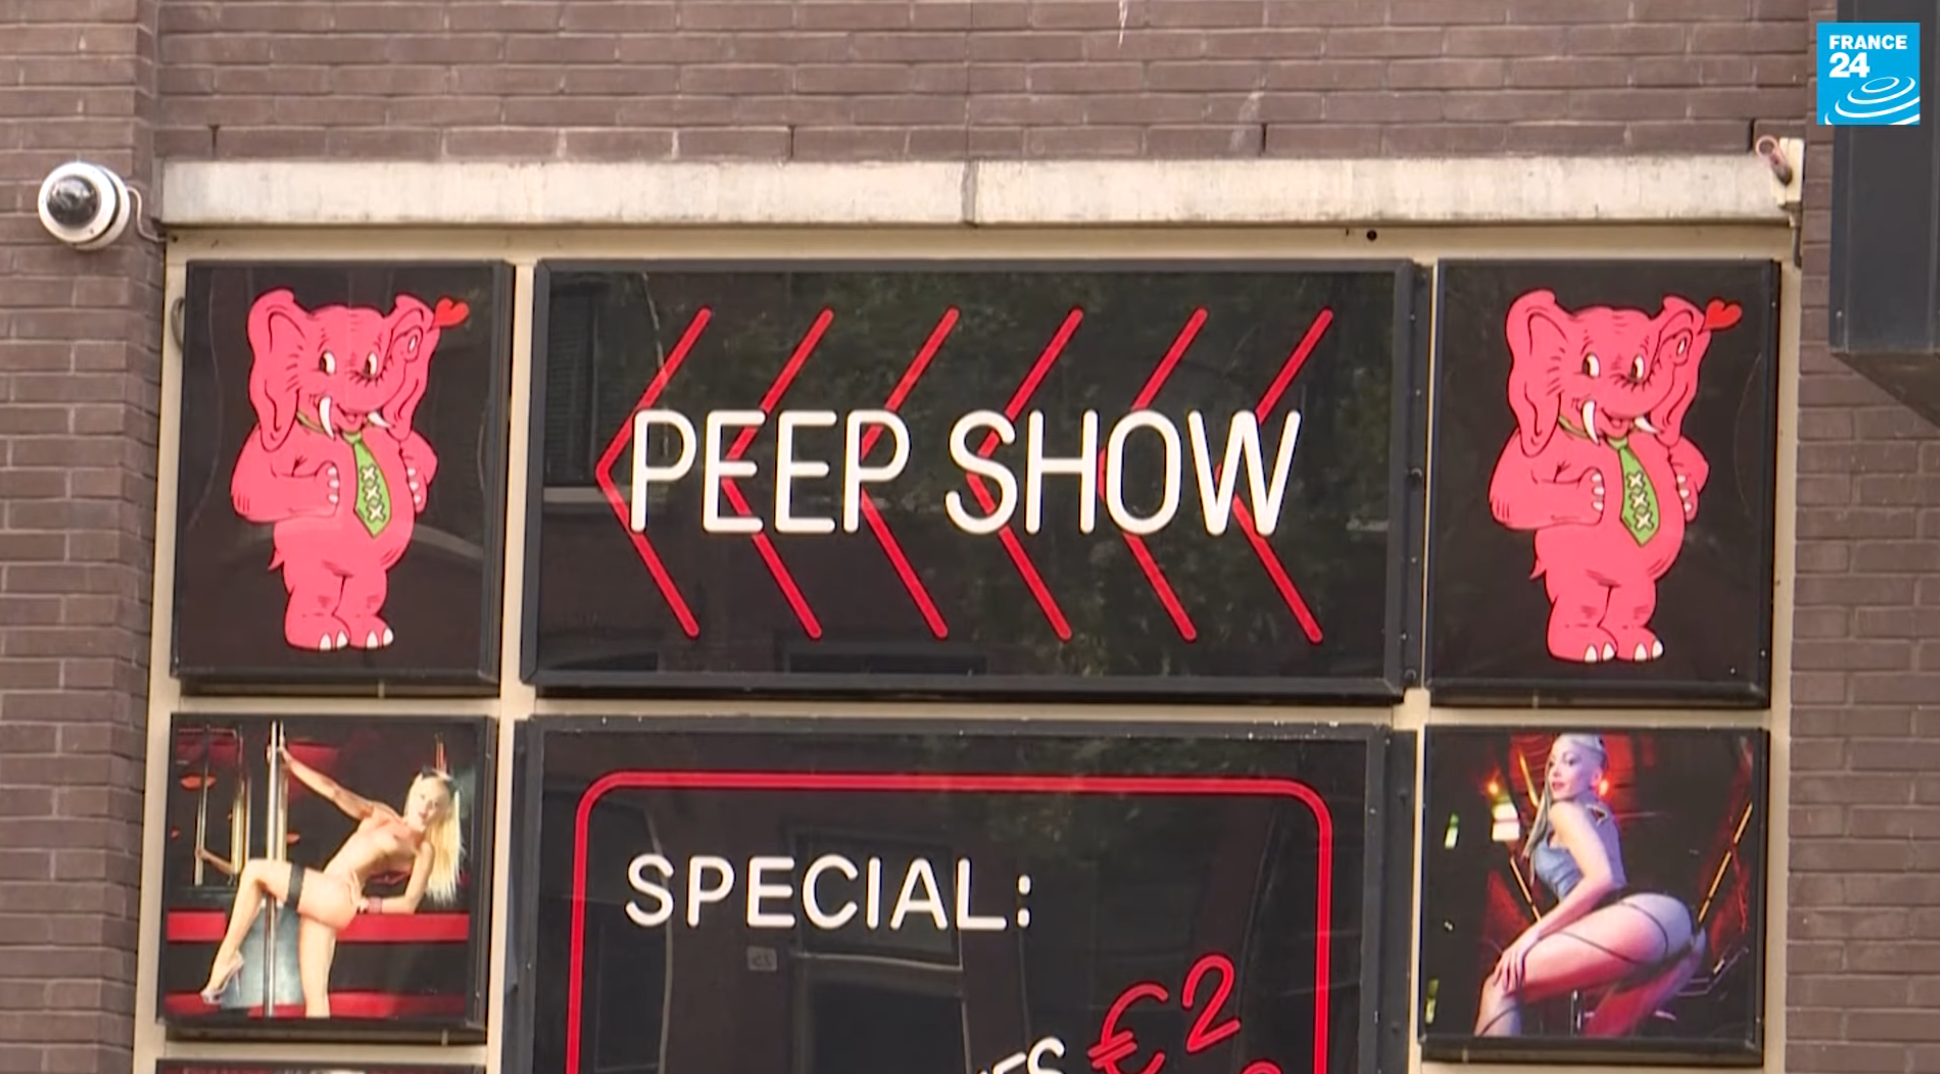 Amsterdam red light district reopens, July 2 2020.